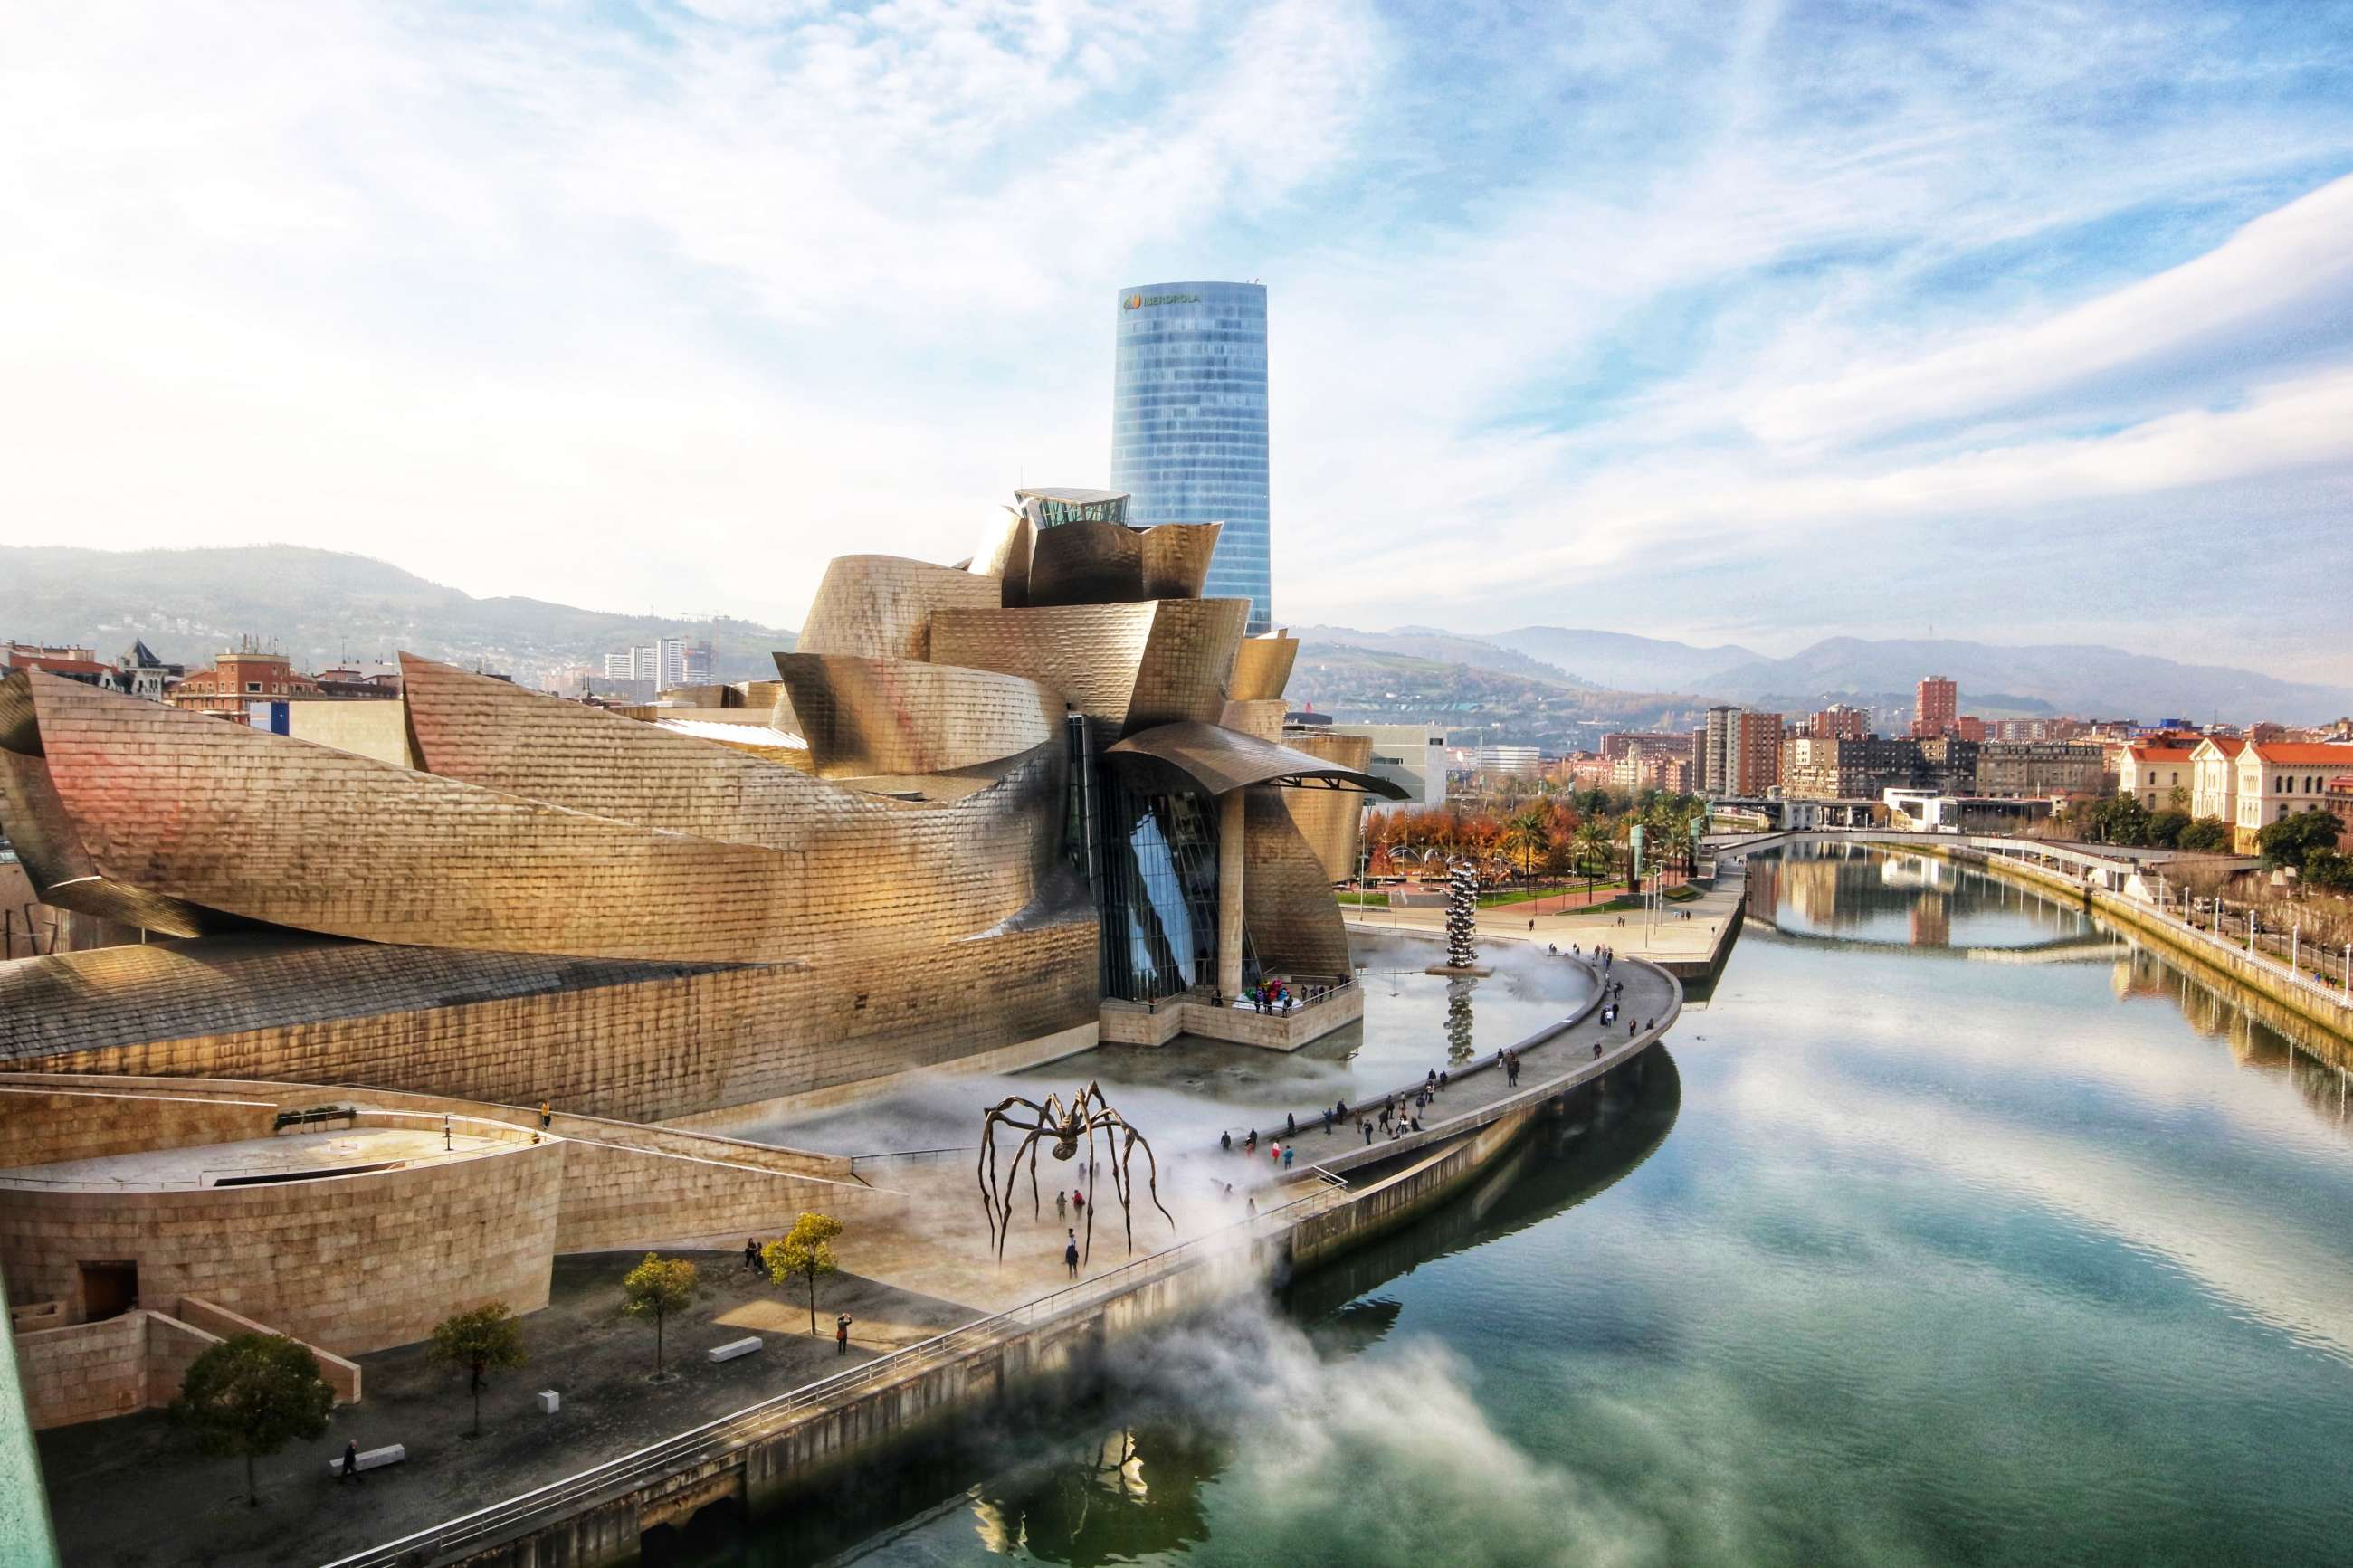 Bilbao Private Tours and Bilbao Small Group Tours